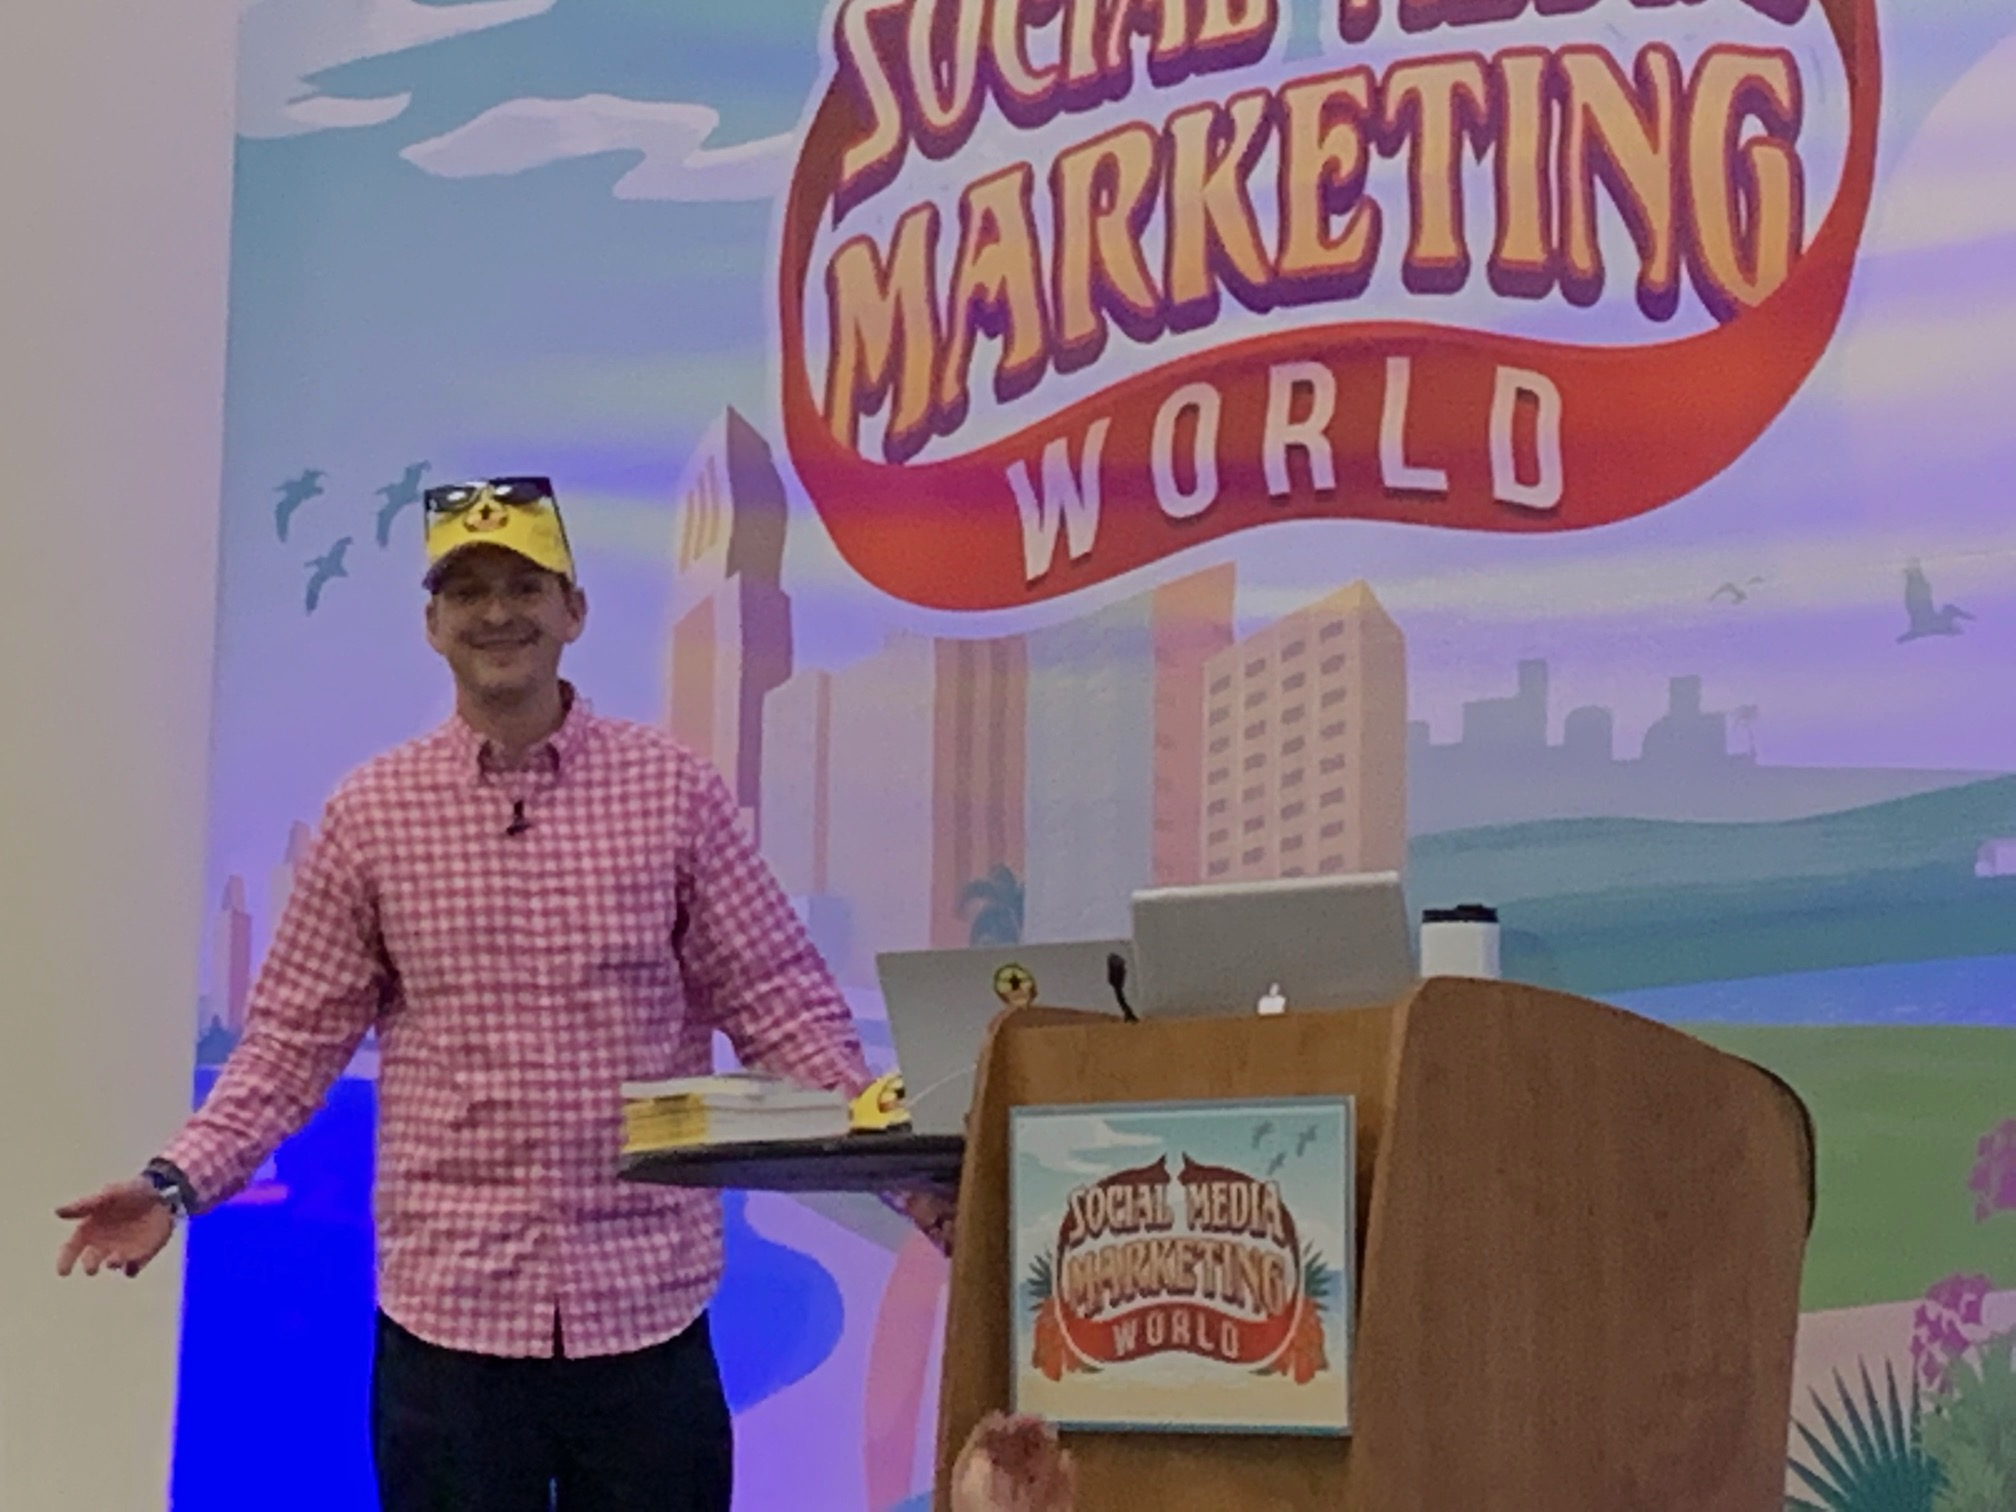 Chris Strub speaking at Social Media Marketing World